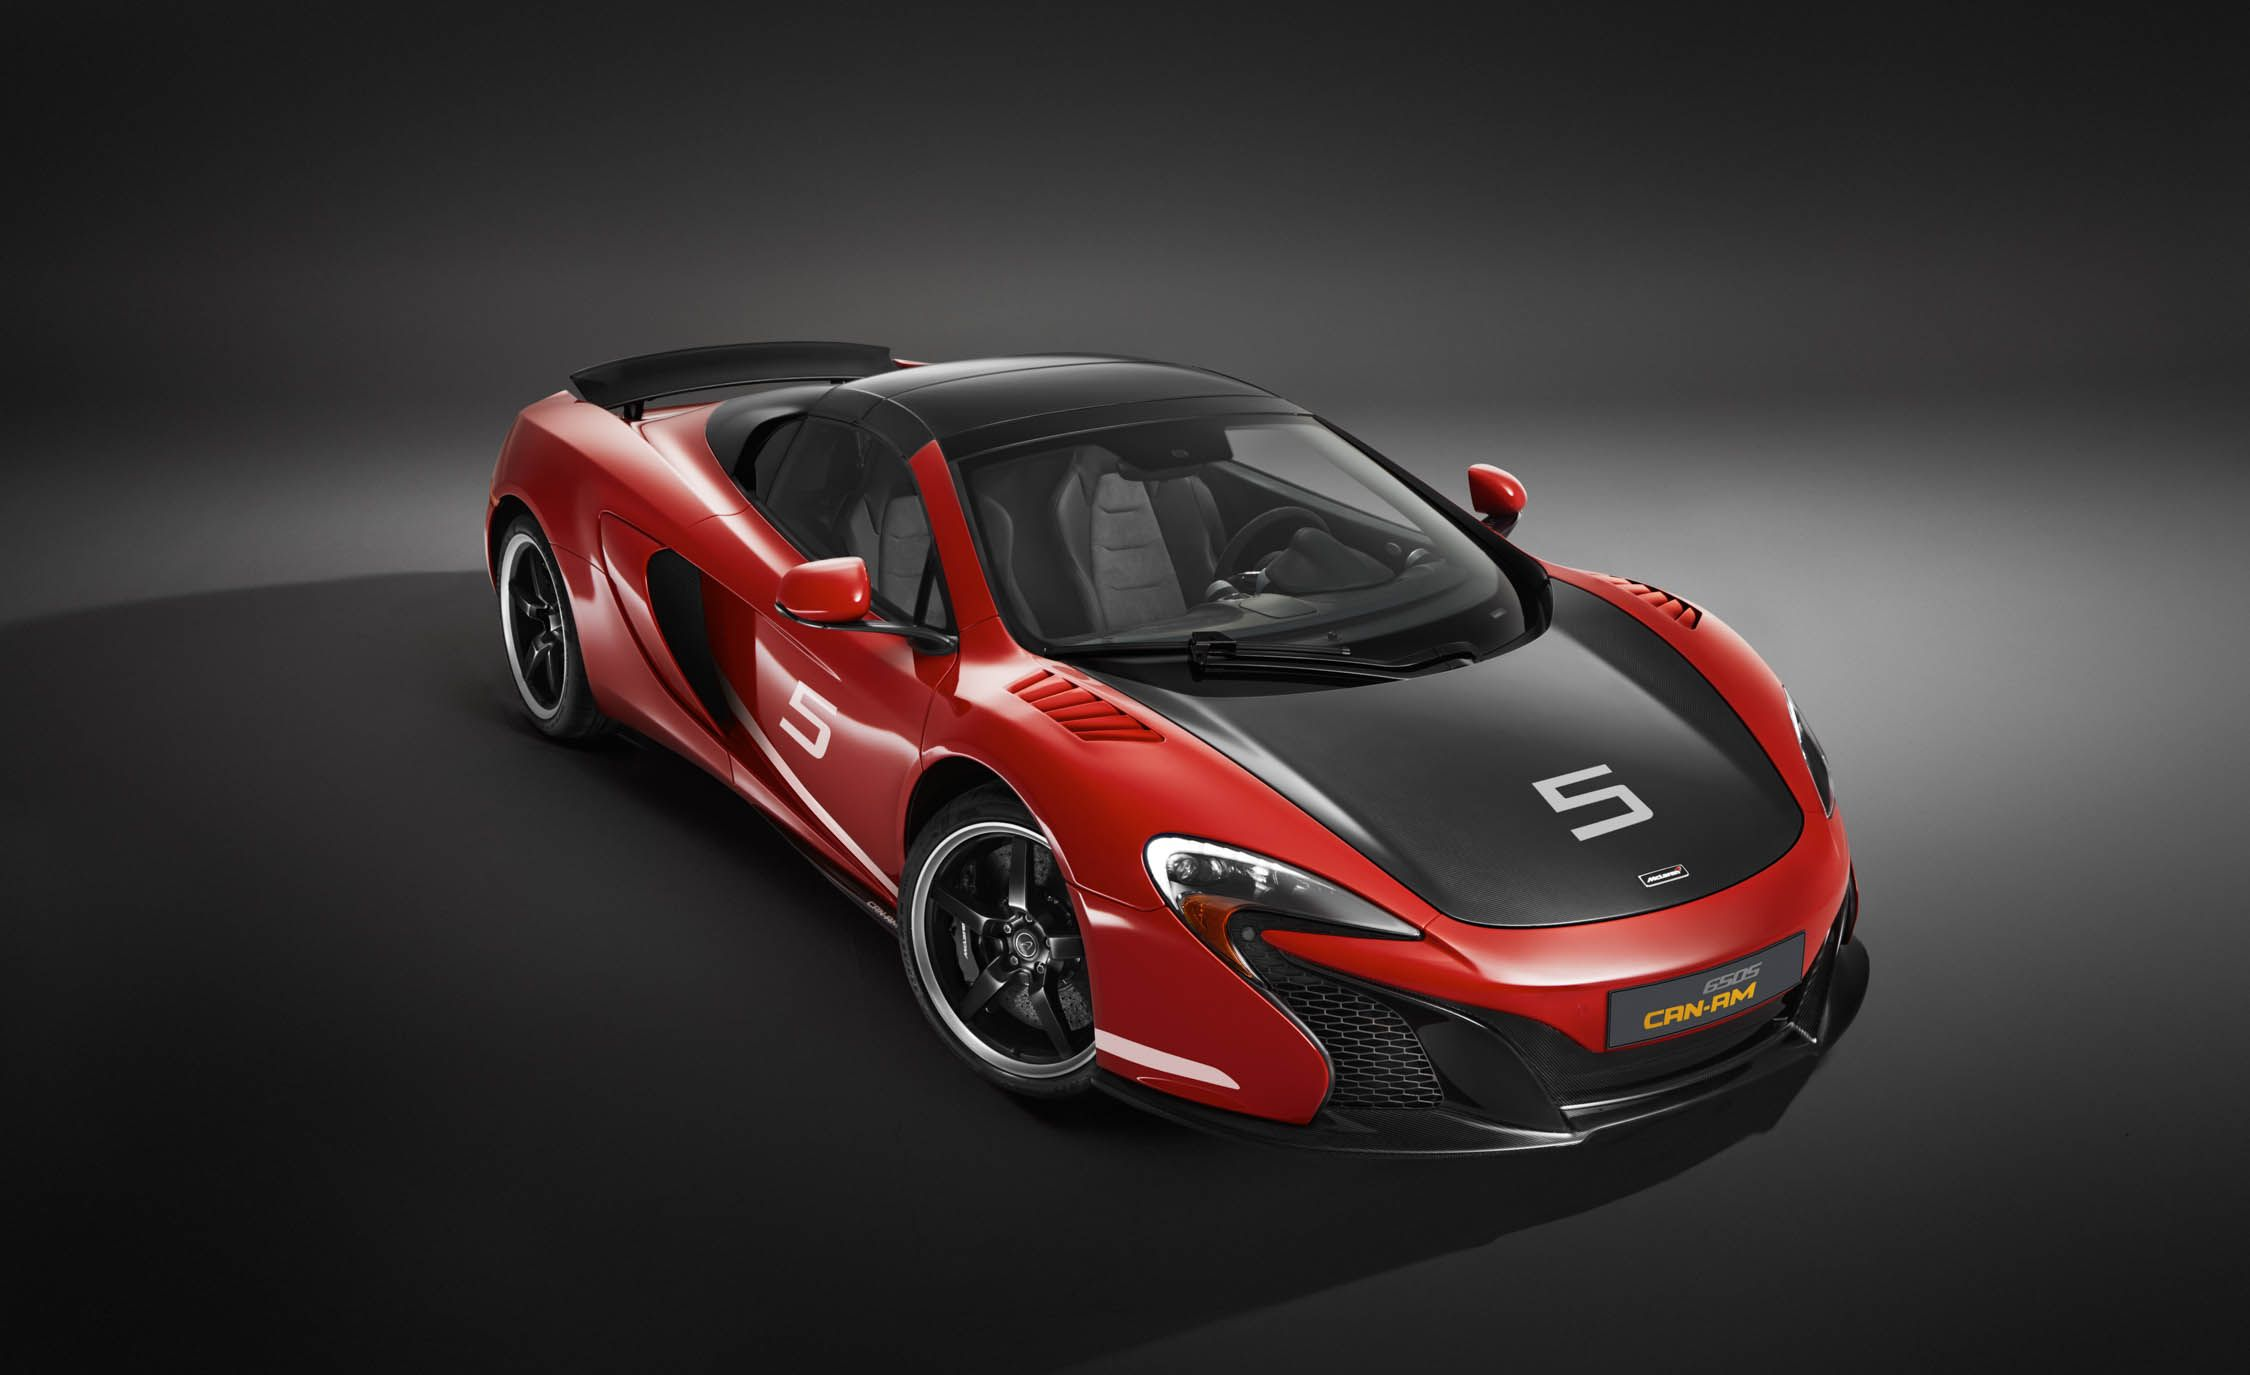 McLaren Announces 650S Can Am; Considers 675LT Spider | Car and ...